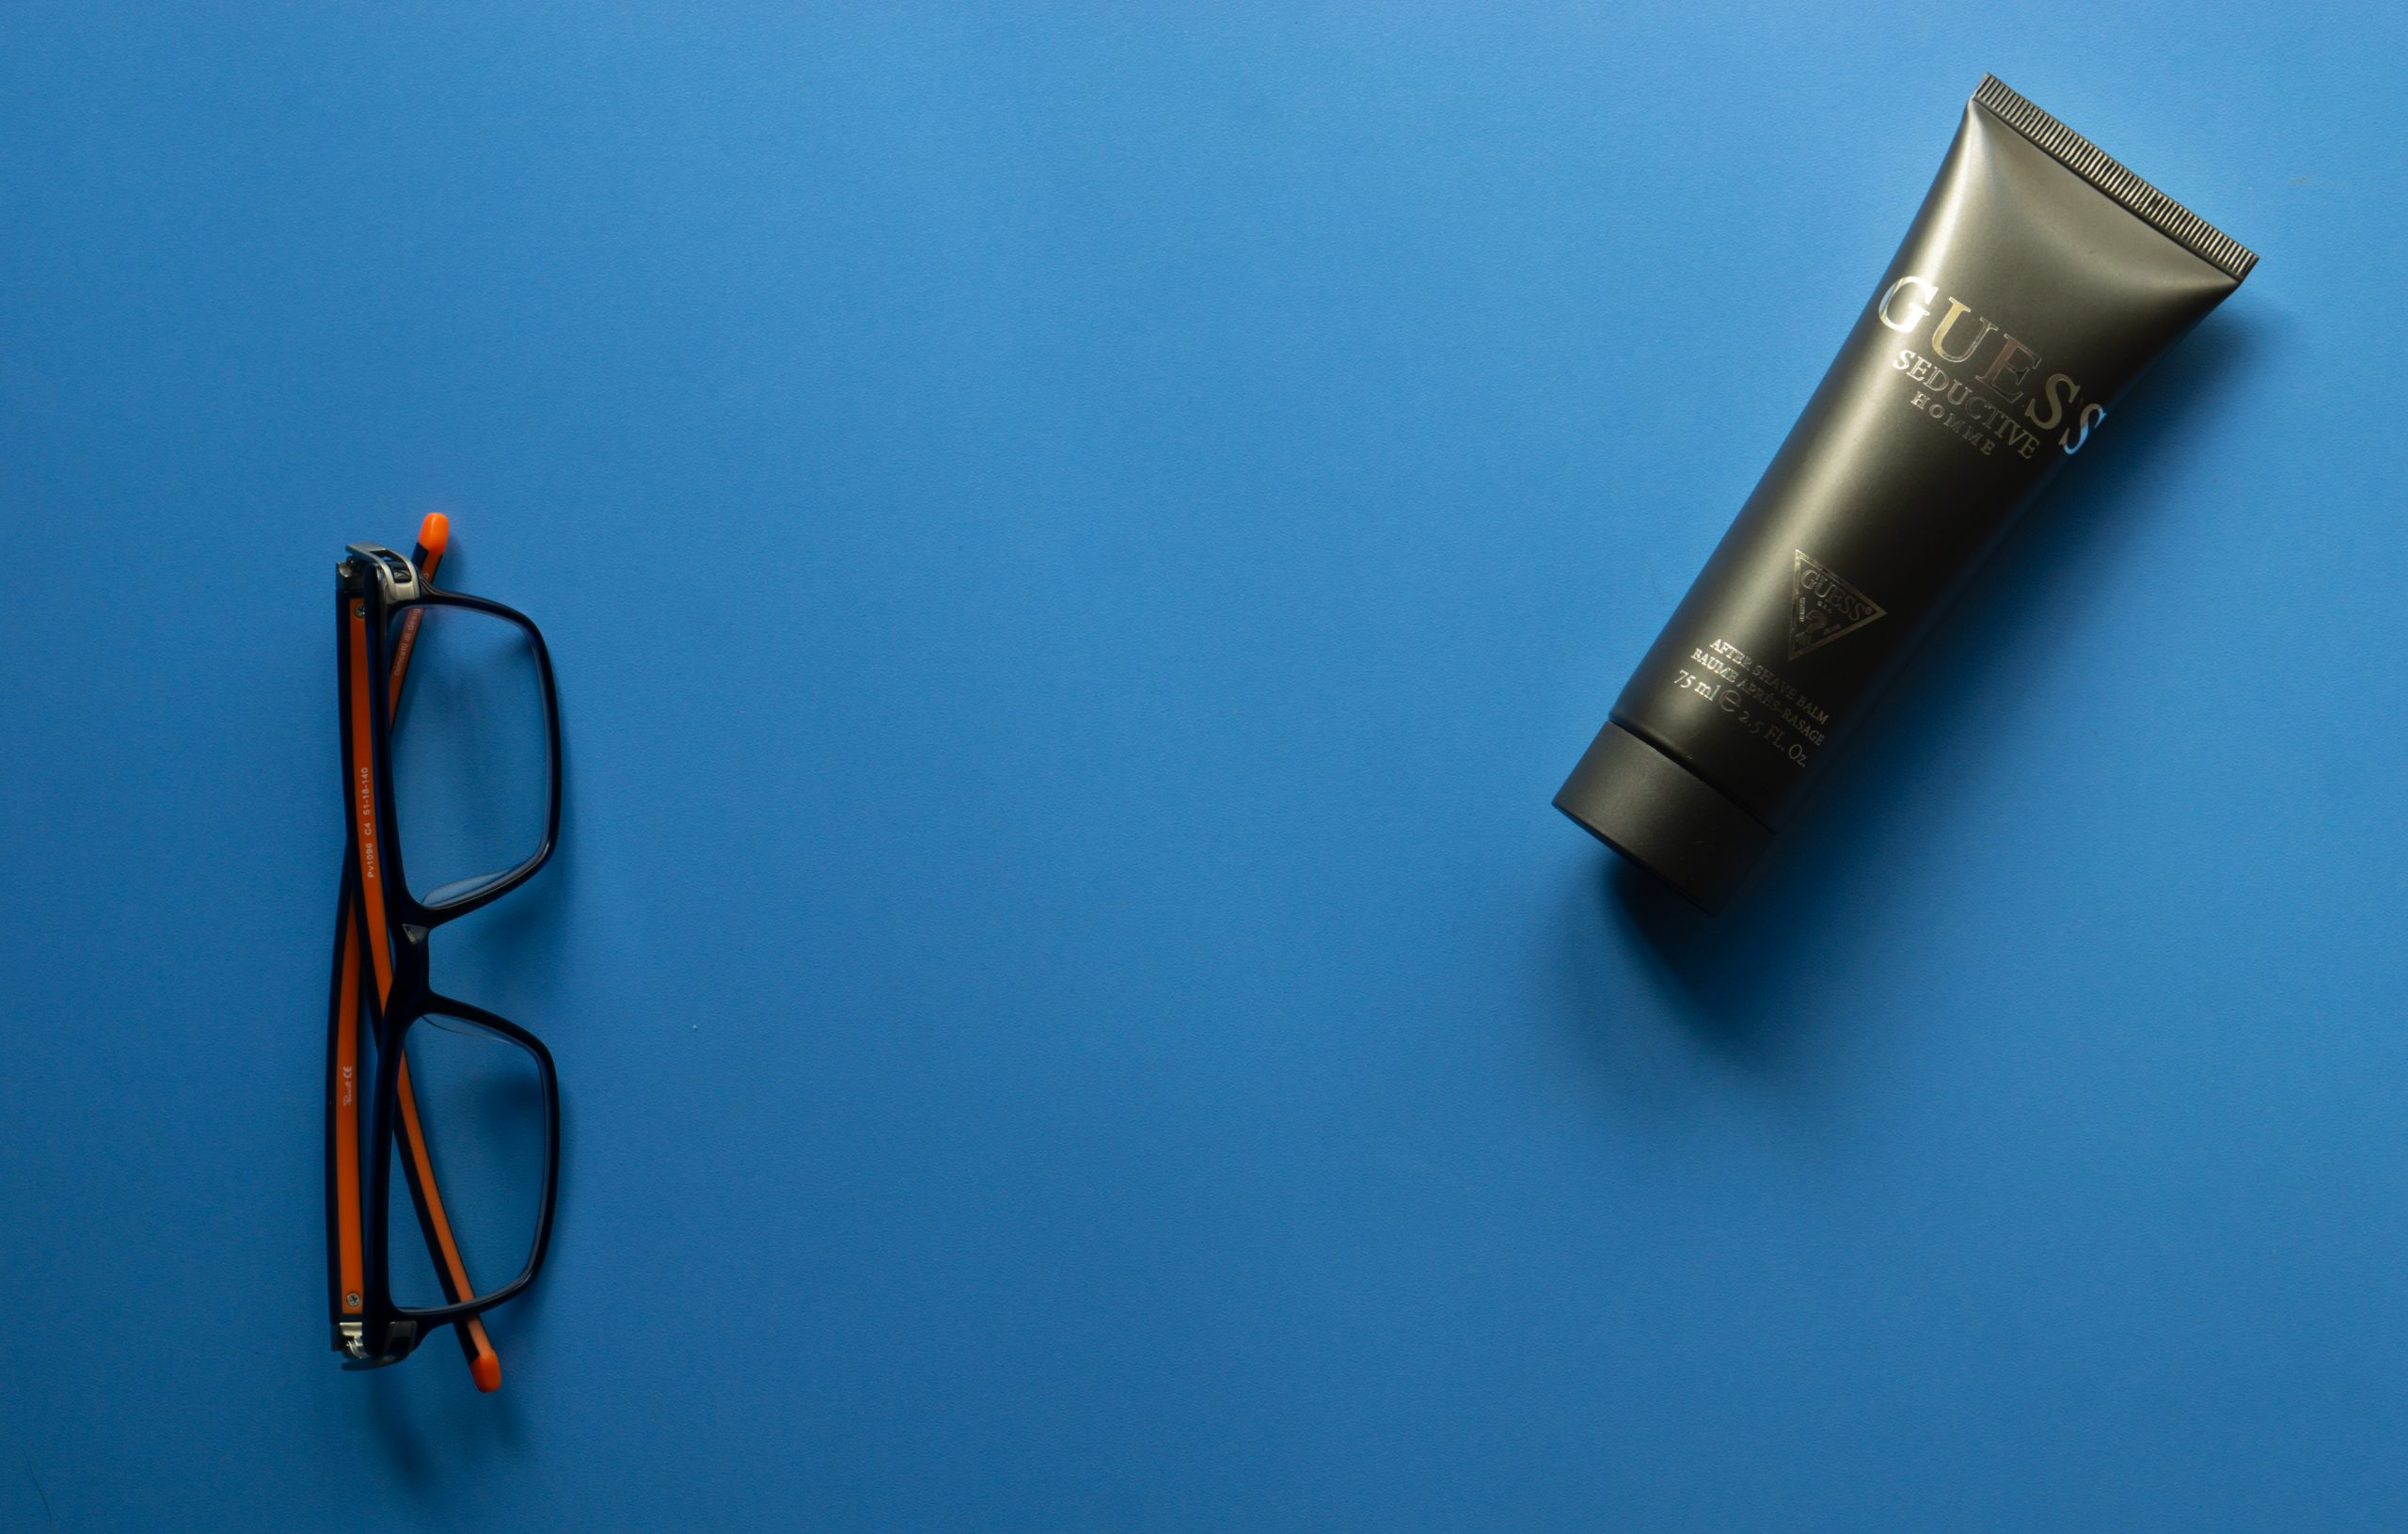 After shave balm with spectacles